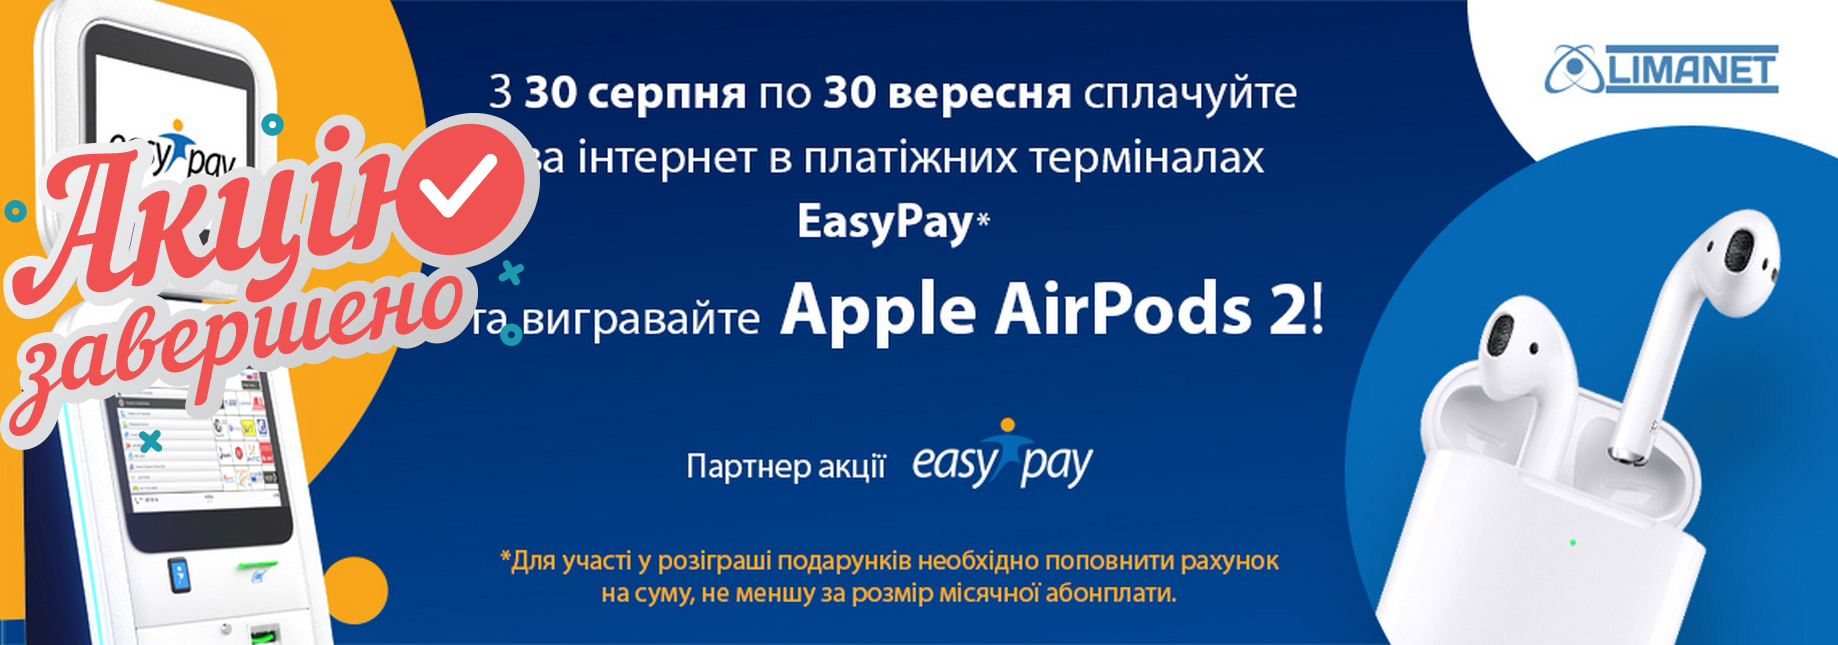 1 LimaNet AirPods2 1280х645 сor